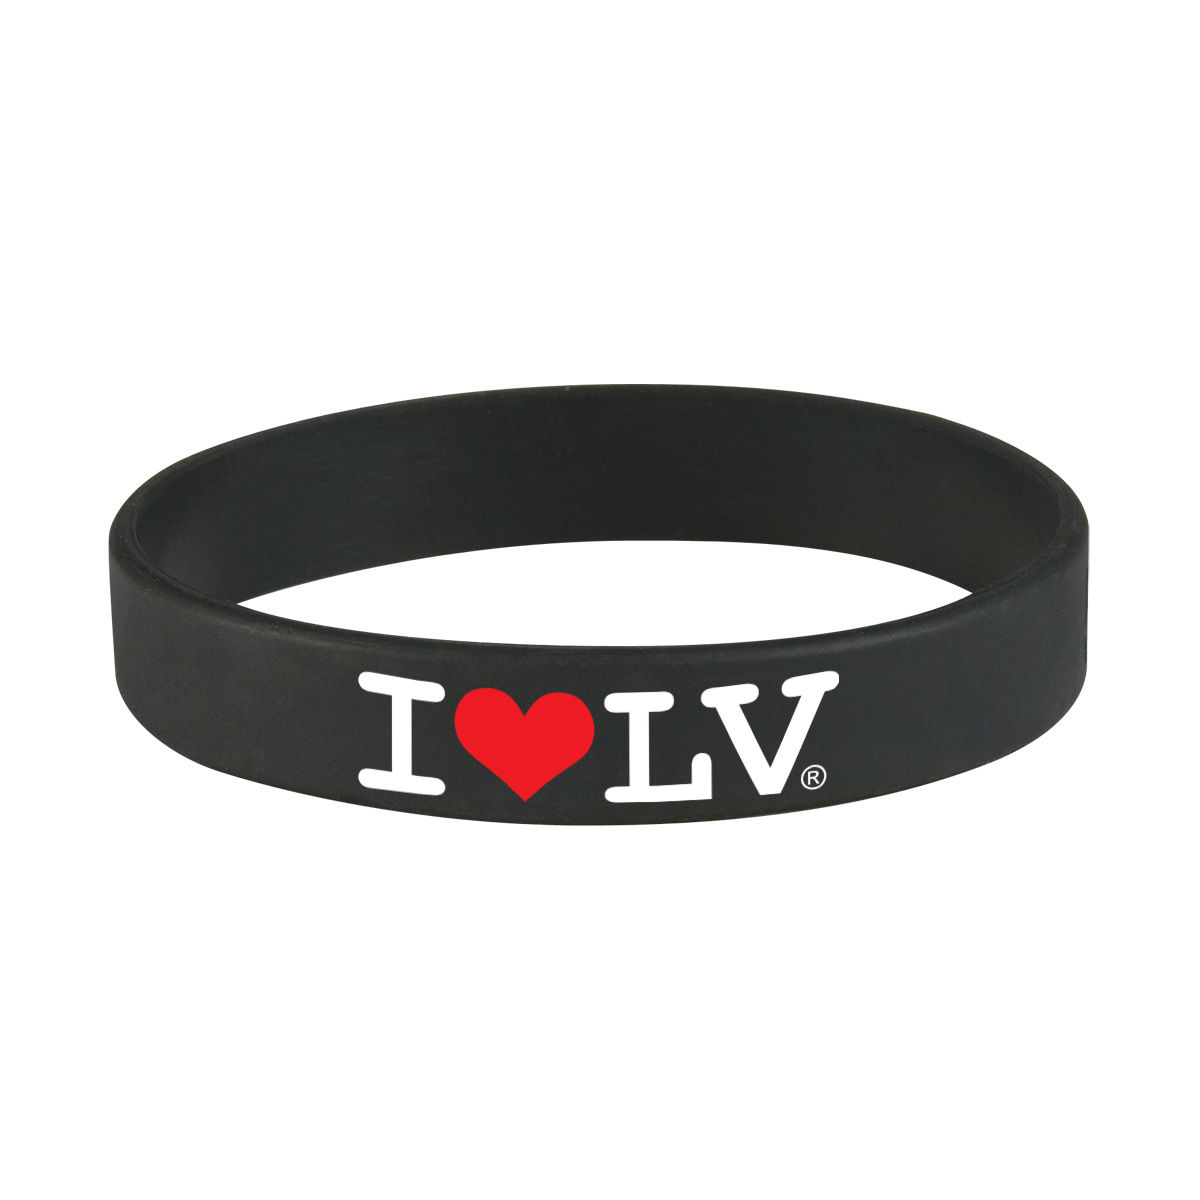 I Love LV® Wristband